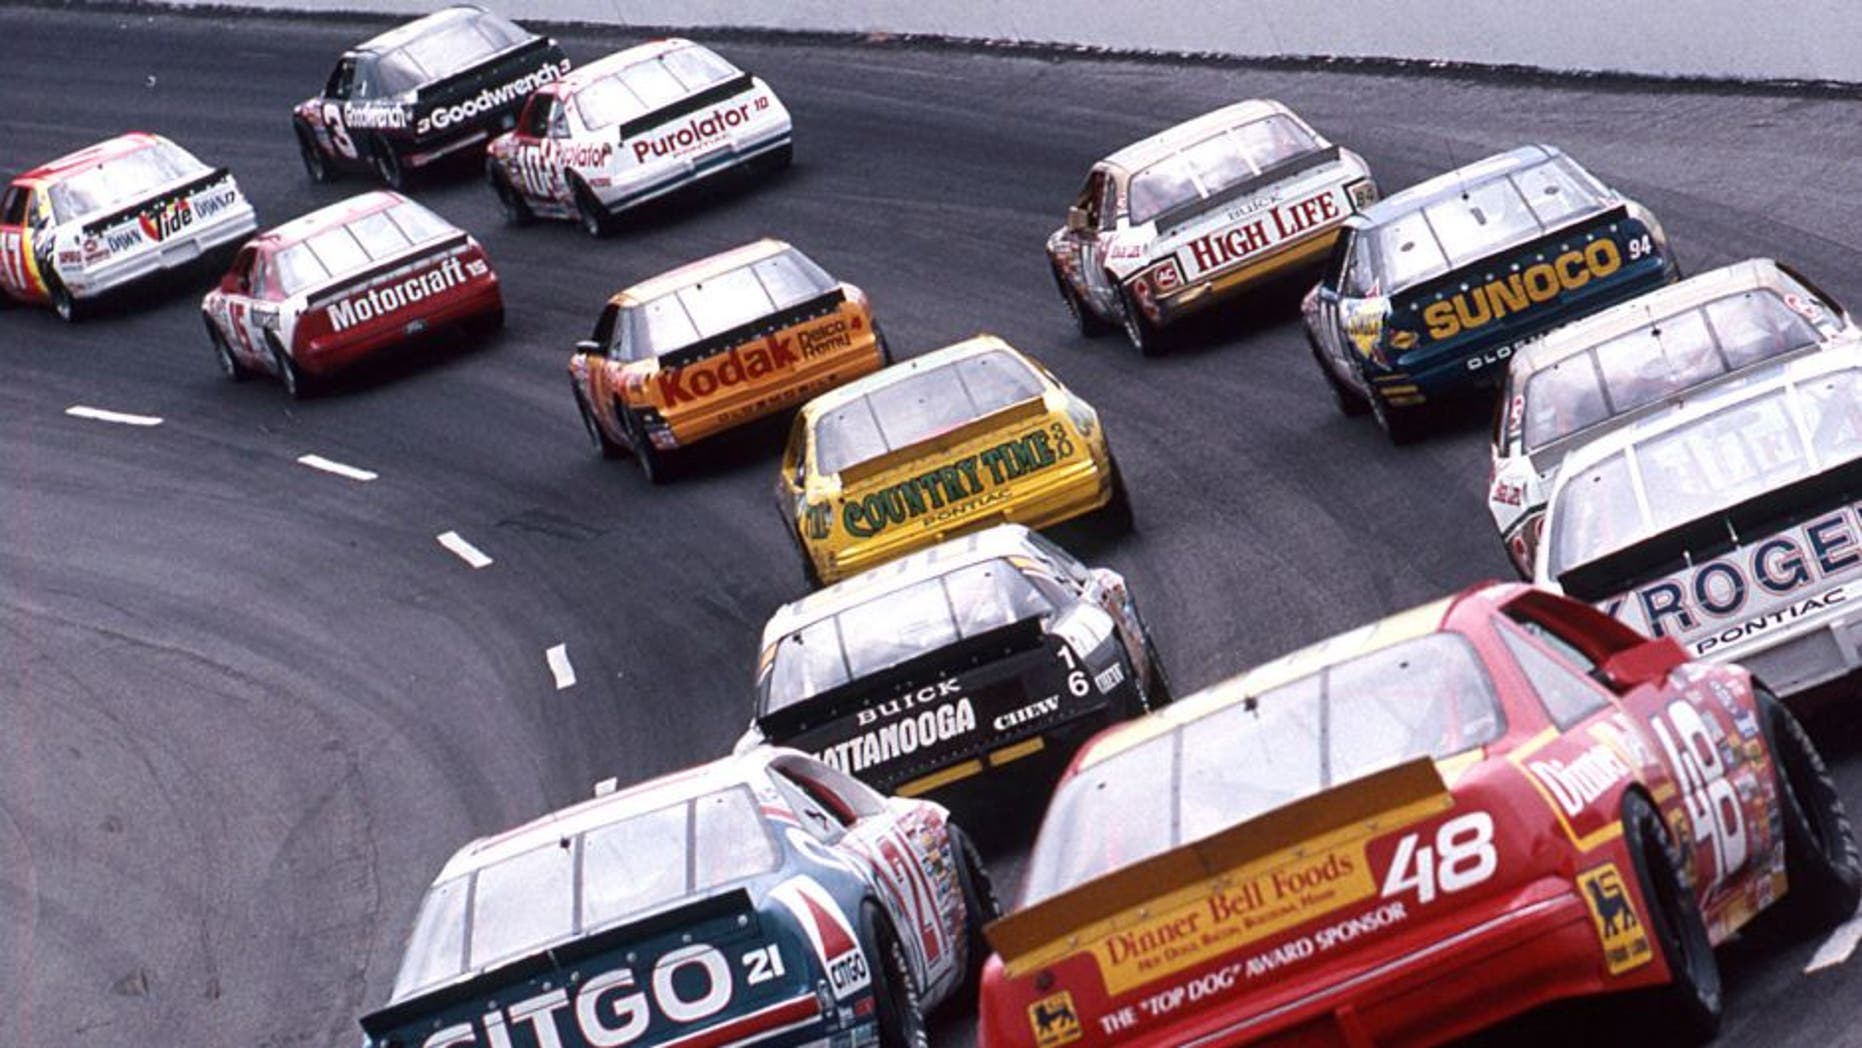 DARLINGTON, SC - SEPTEMBER 2, 1989: Greg Sacks (No. 17), Dale Earnhardt (No. 3), Morgan Shepherd (No. 15) and Derrike Cope (No. 10) lead the field during the running of the Heinz Southern 500 NASCAR Cup race at Darlington Raceway. Earnhardt went on to score the victory. (Photo by ISC Images & Archives via Getty Images)